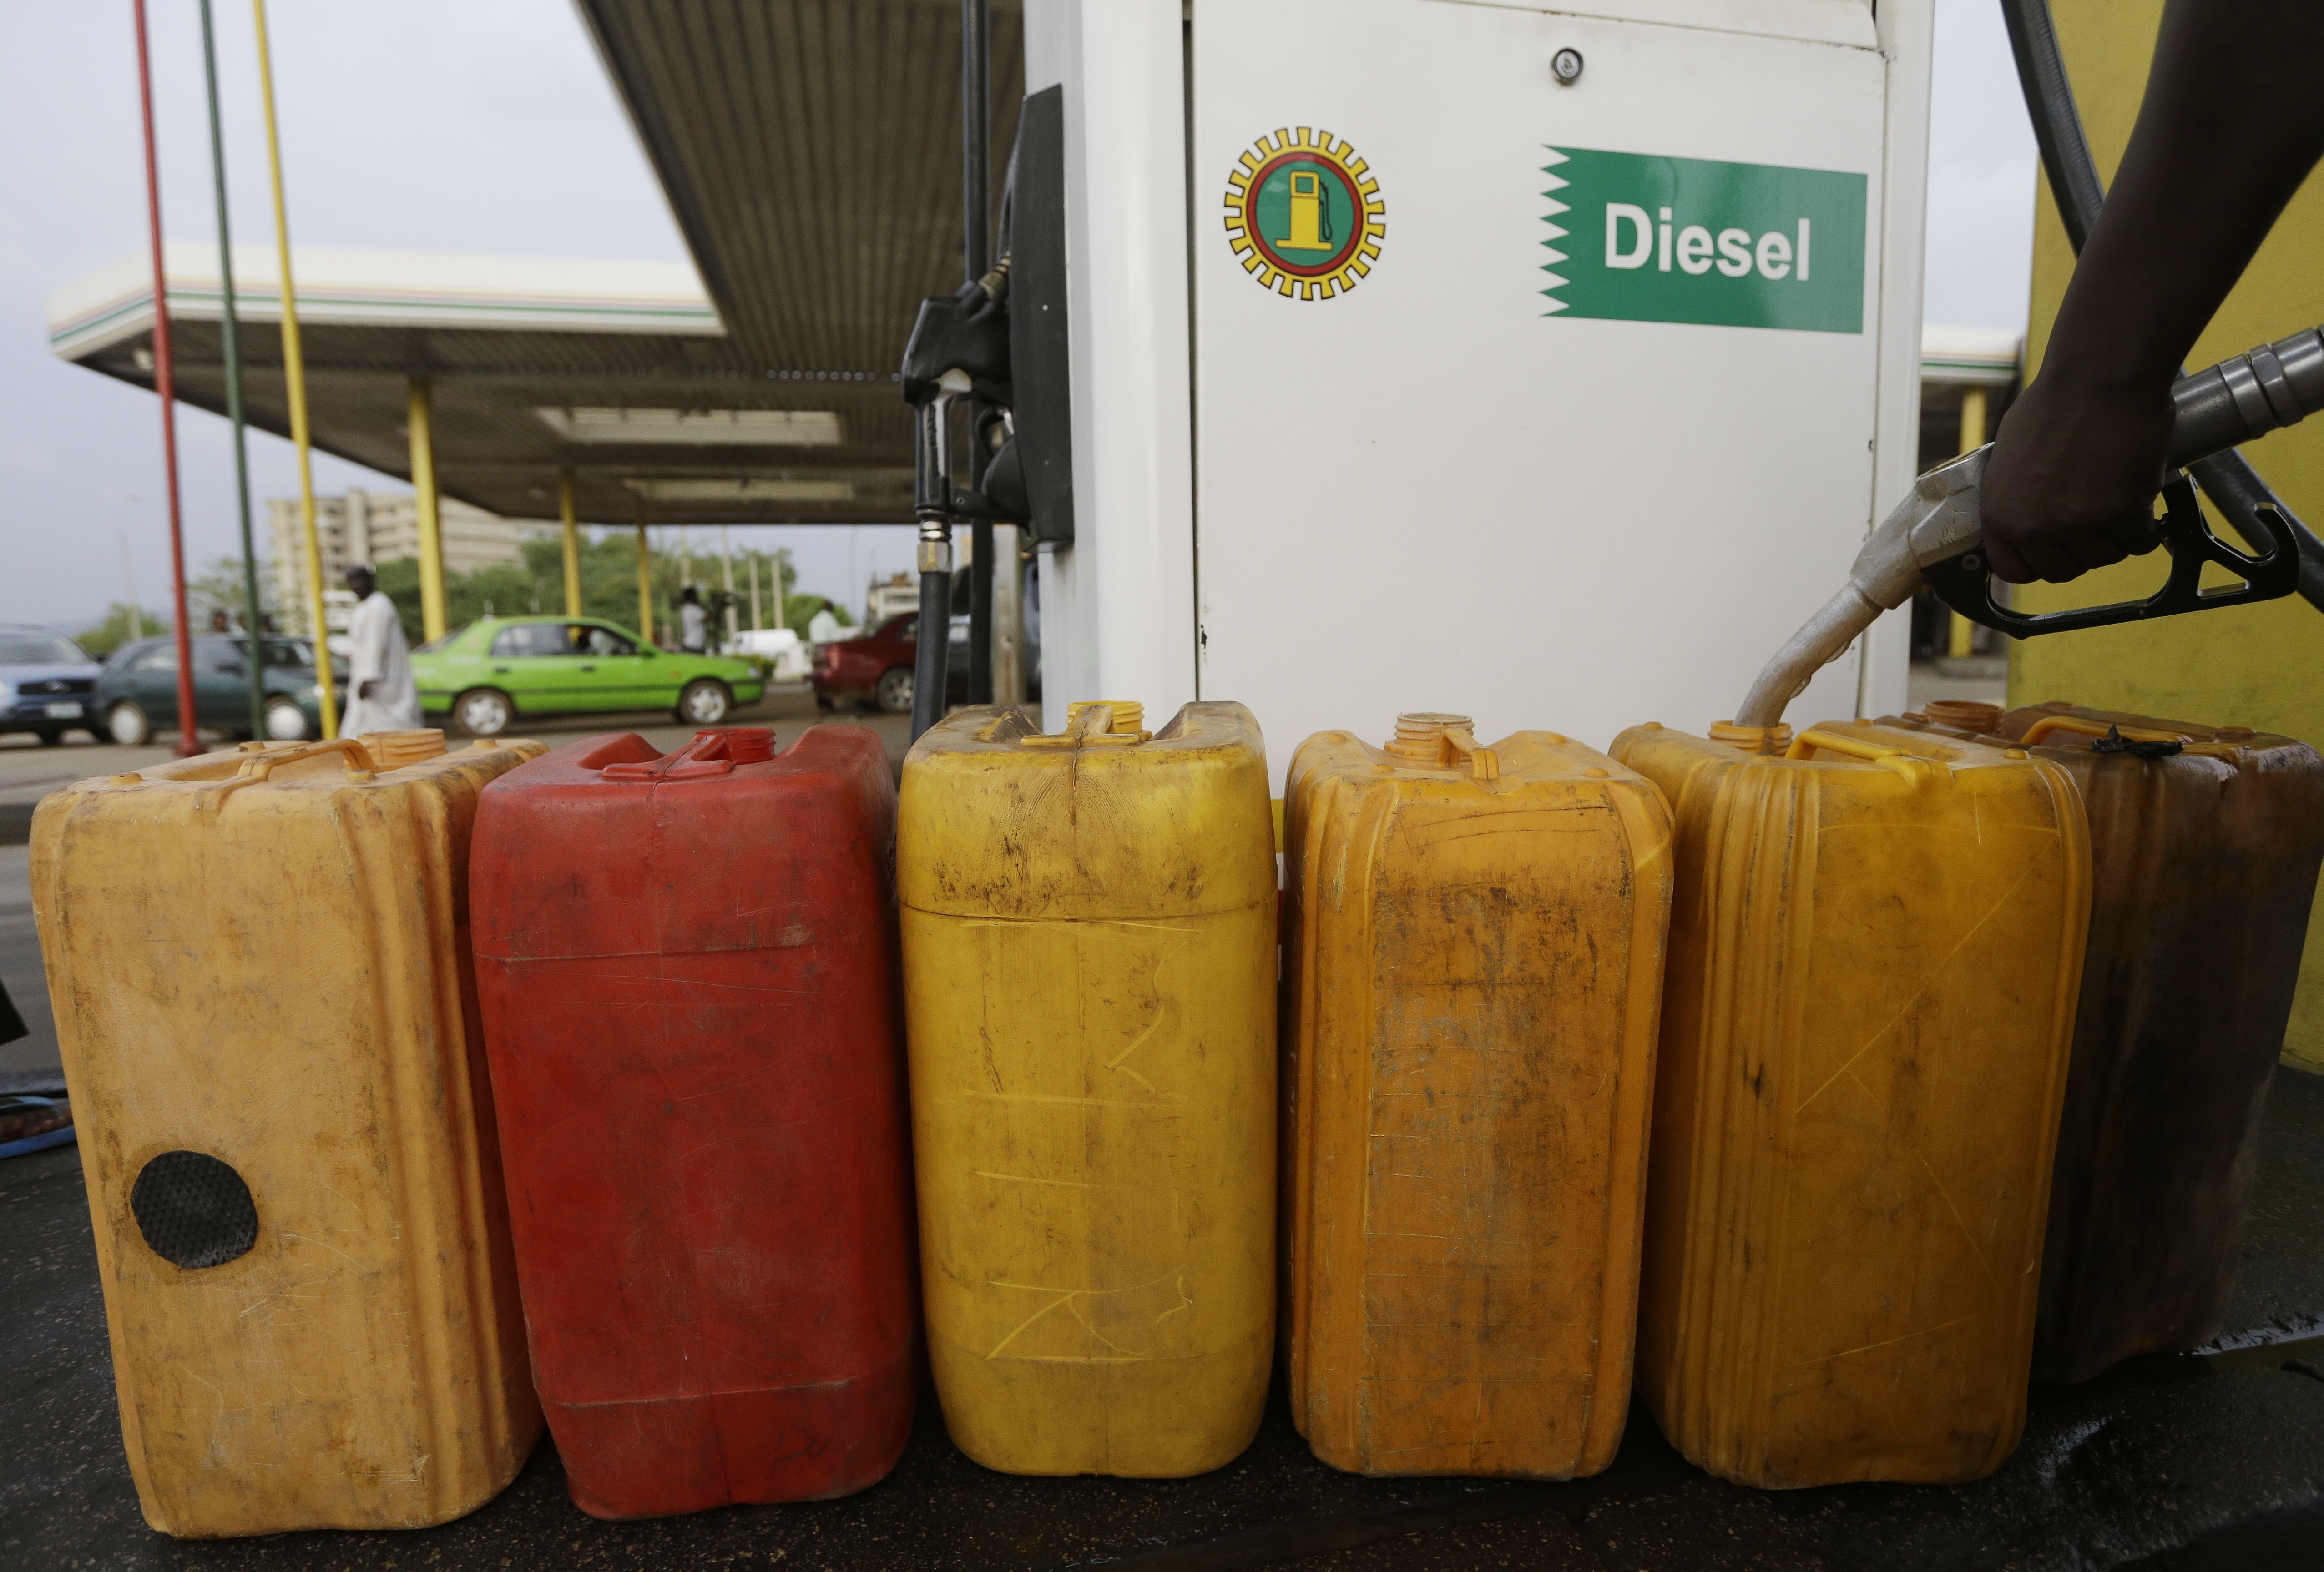 A man fills containers with diesel at a petrol station in Abuja